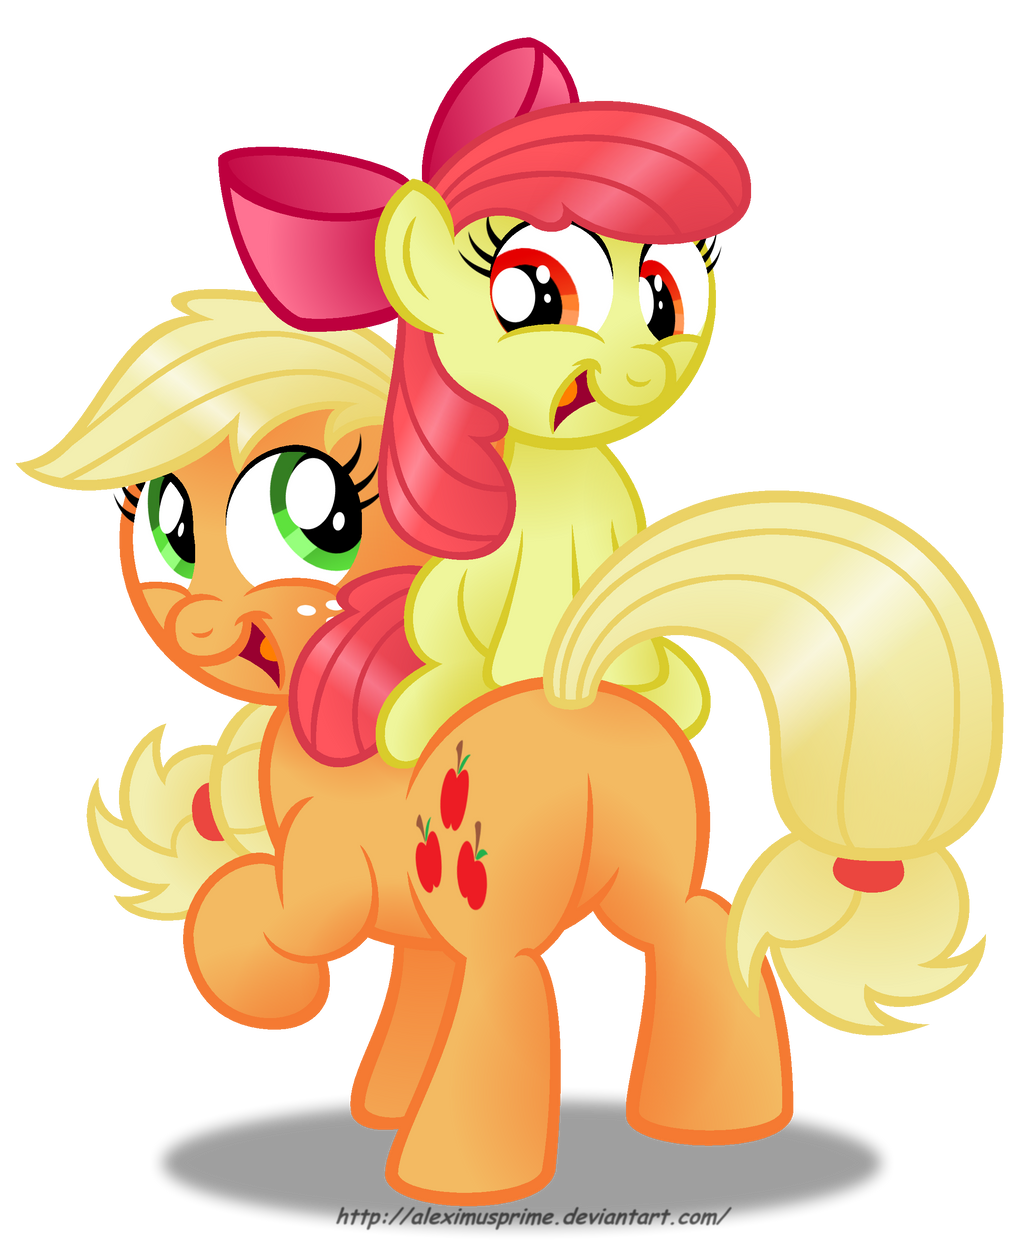 Apples to Apples by AleximusPrime